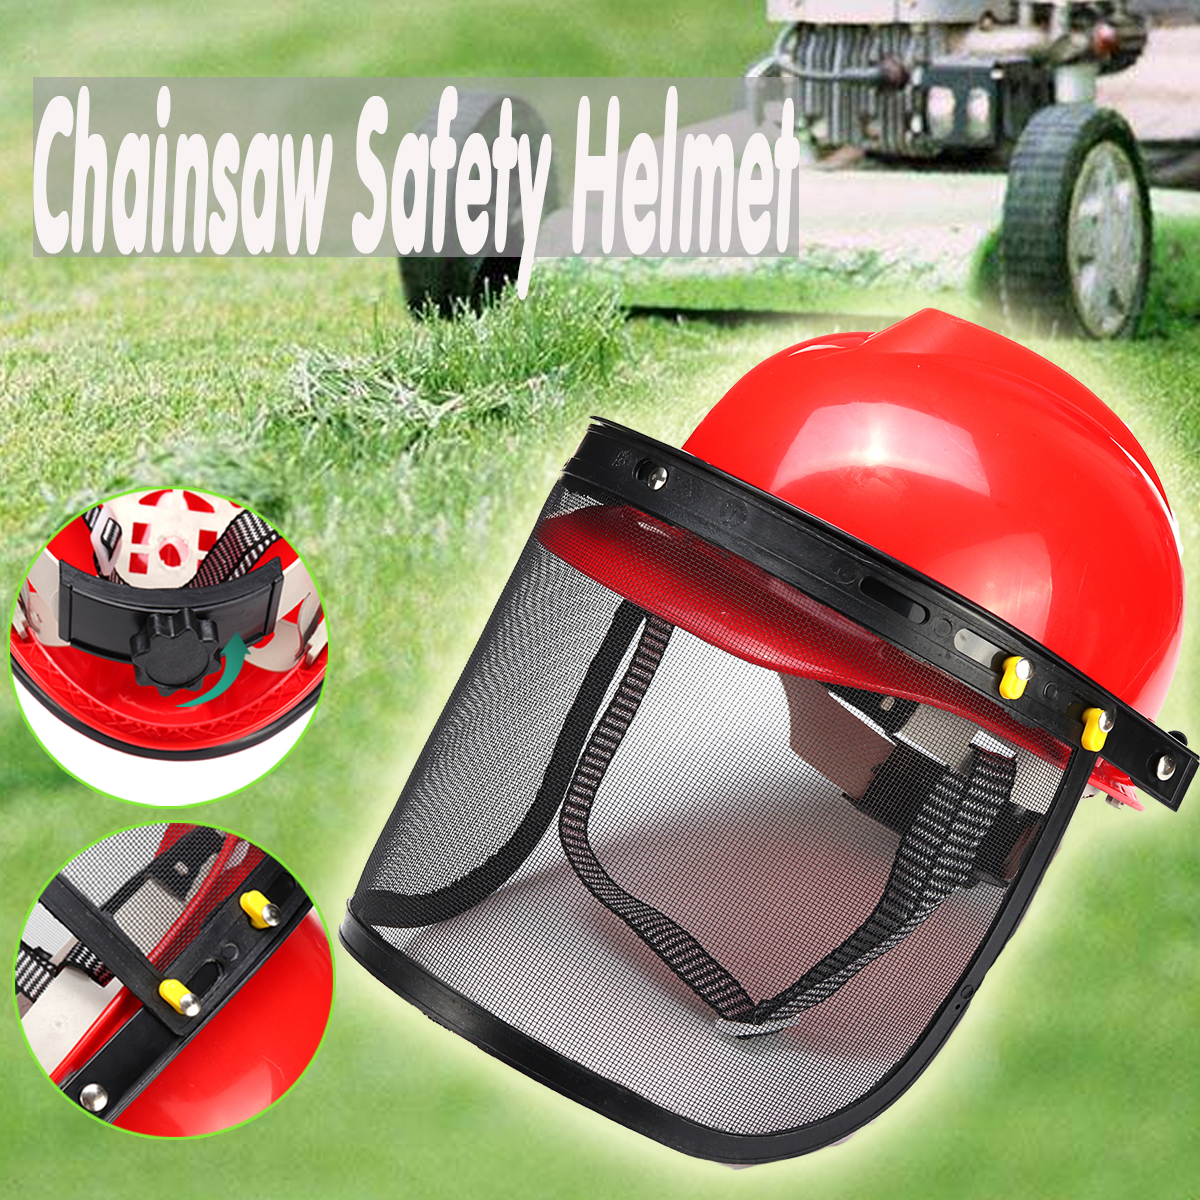 Chainsaw Safety Helmet Brushcutter Trimmer Protective Hat Forestry Visor Protection Logging chainsaw safety helmet hat logging brushcutter forestry visor protection